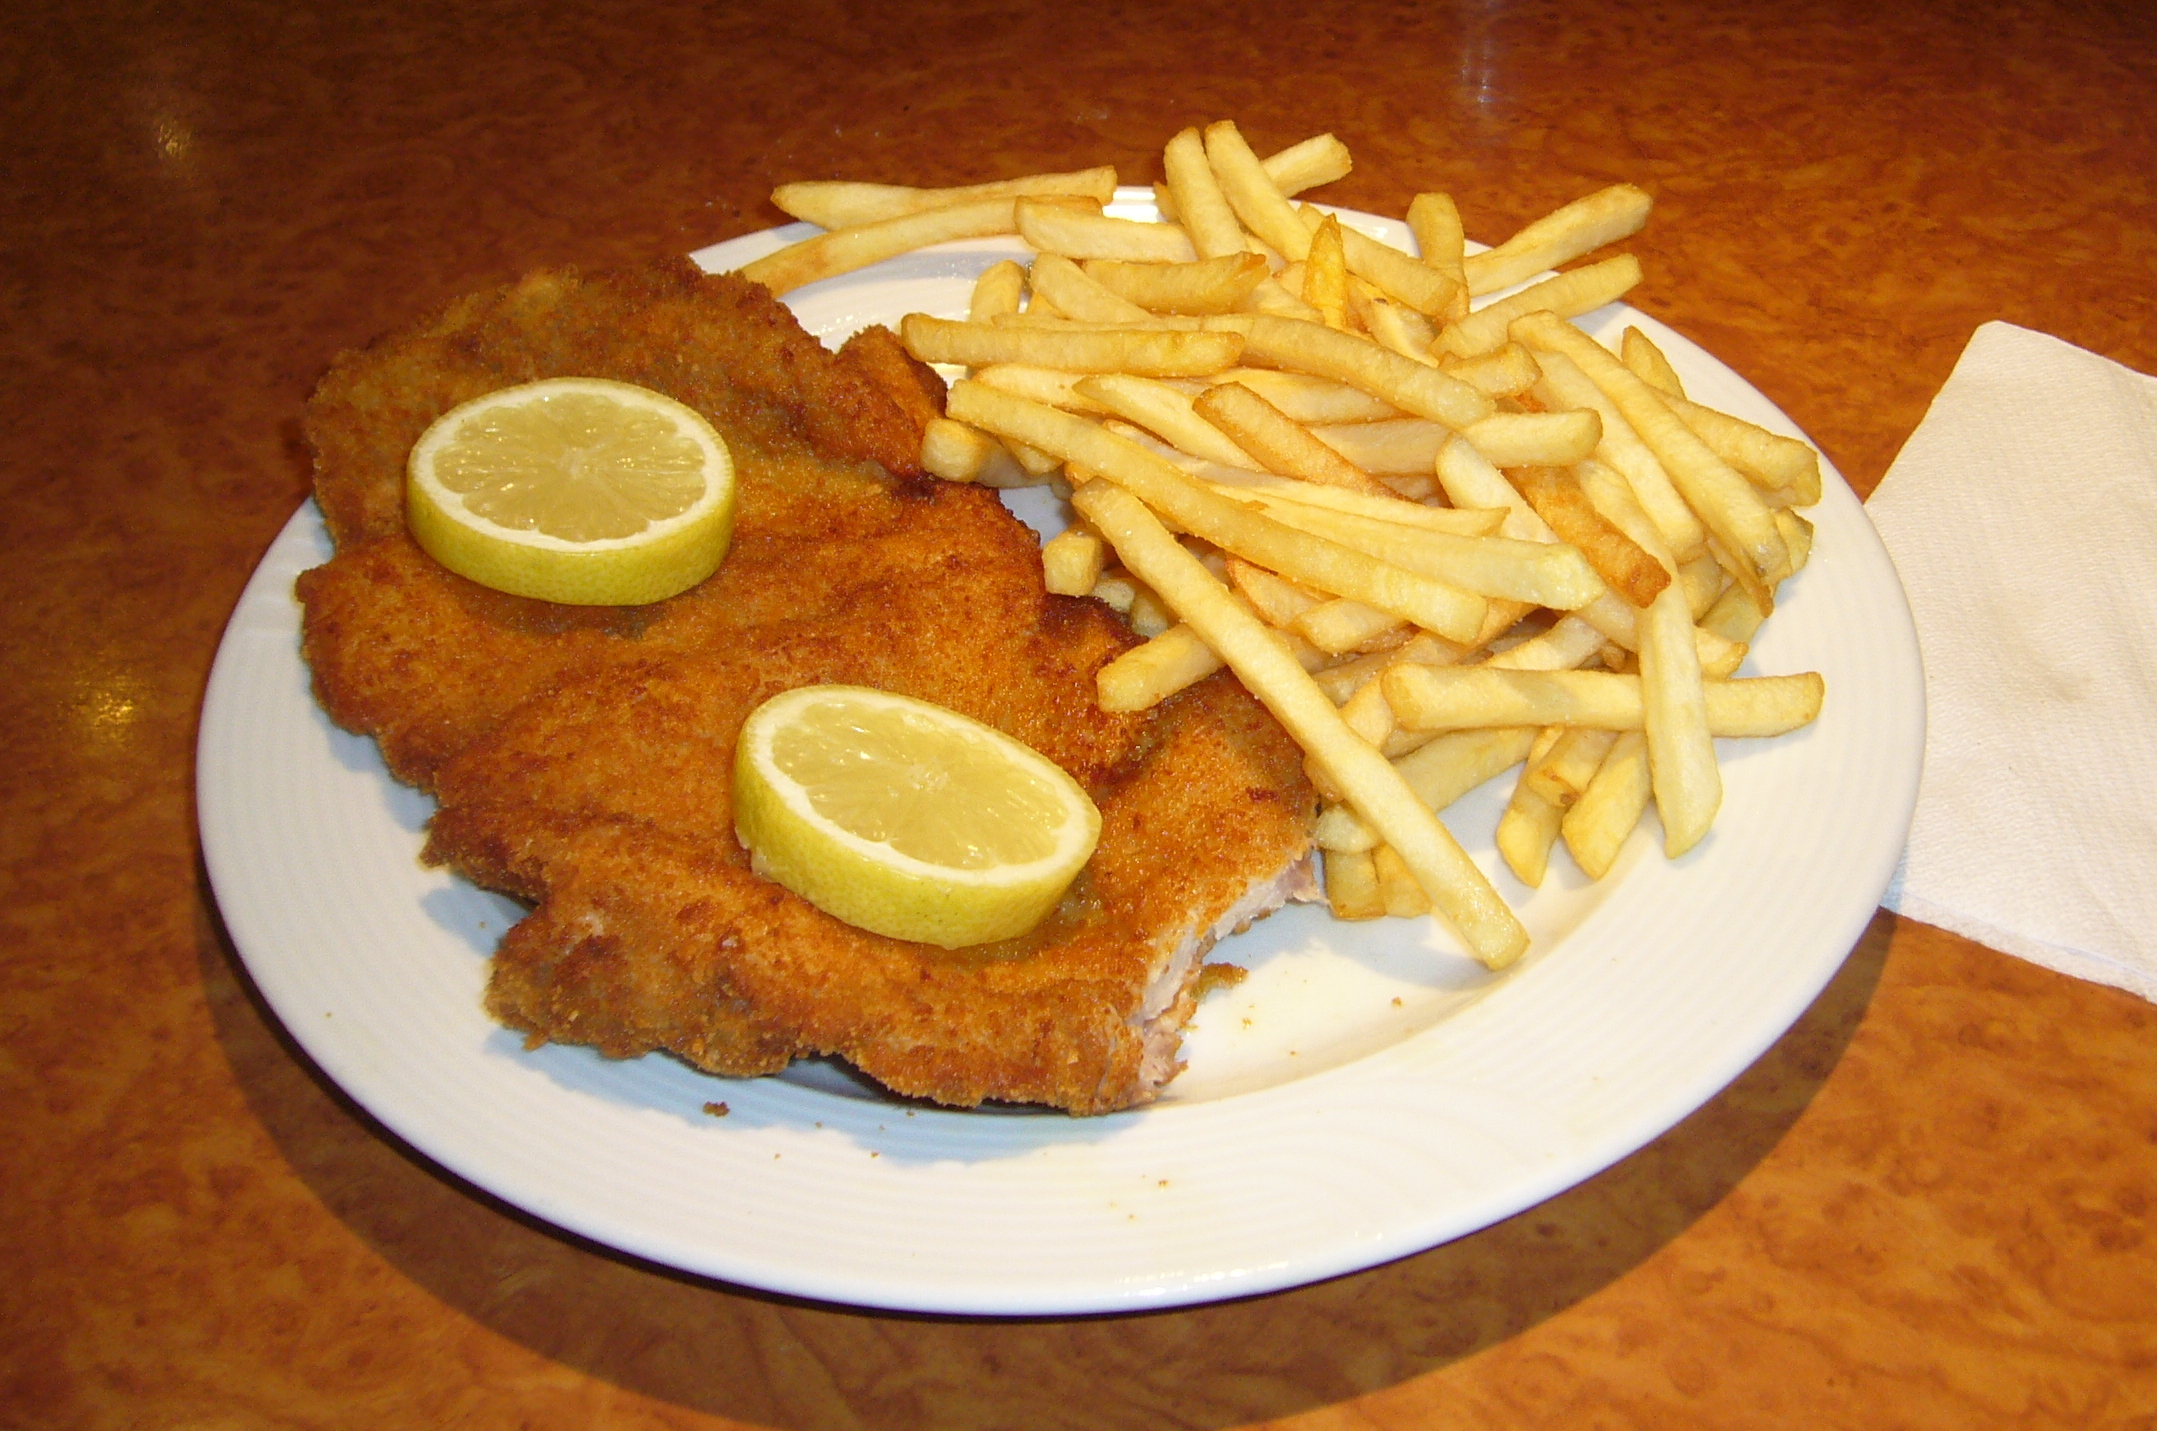 File:Schnitzel.JPG - Wikimedia Commons